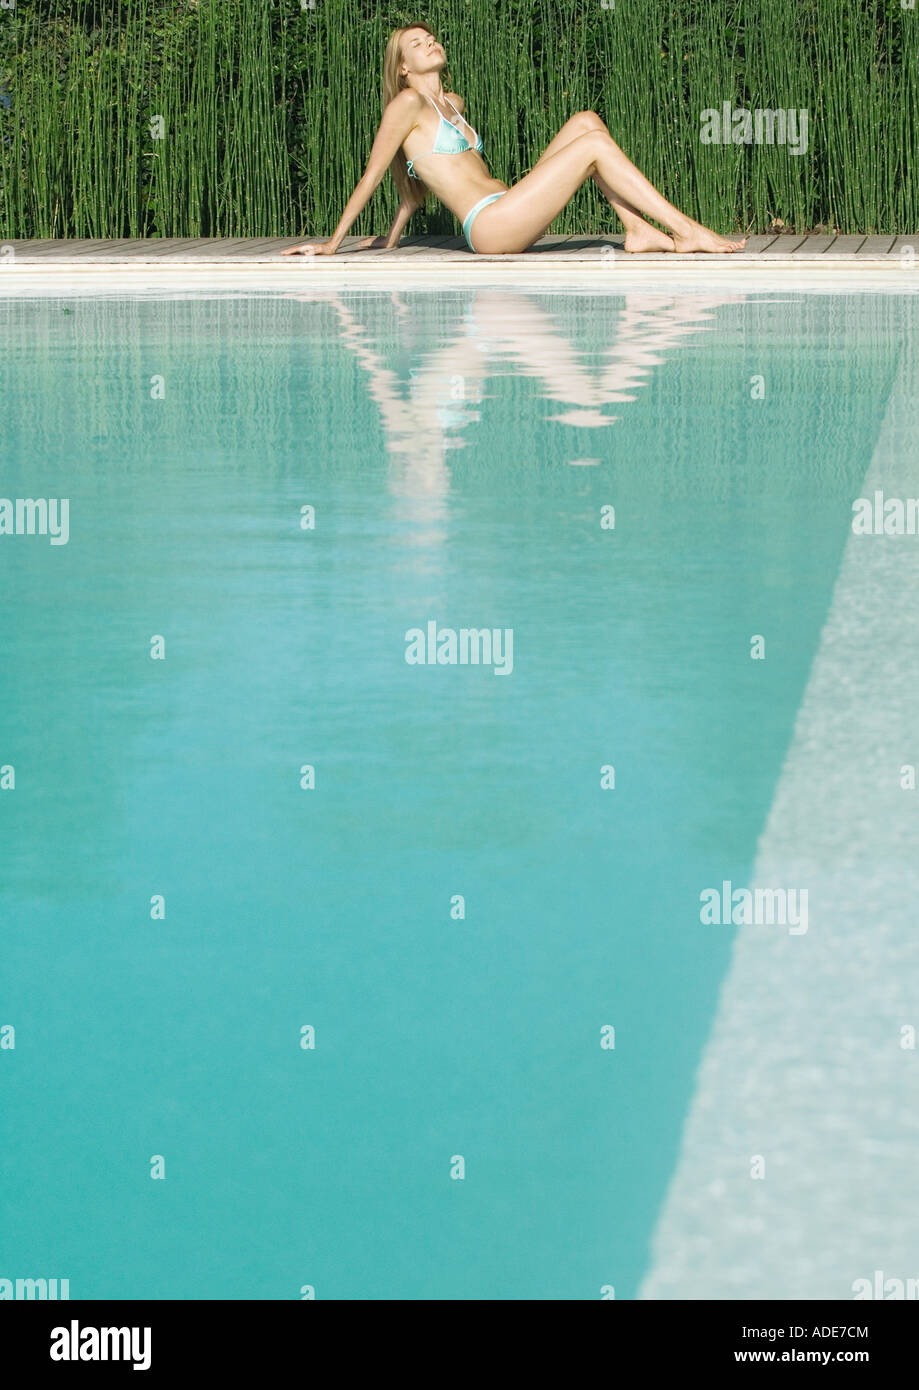 Young woman sitting by edge of pool with knees up, full length - Stock Image